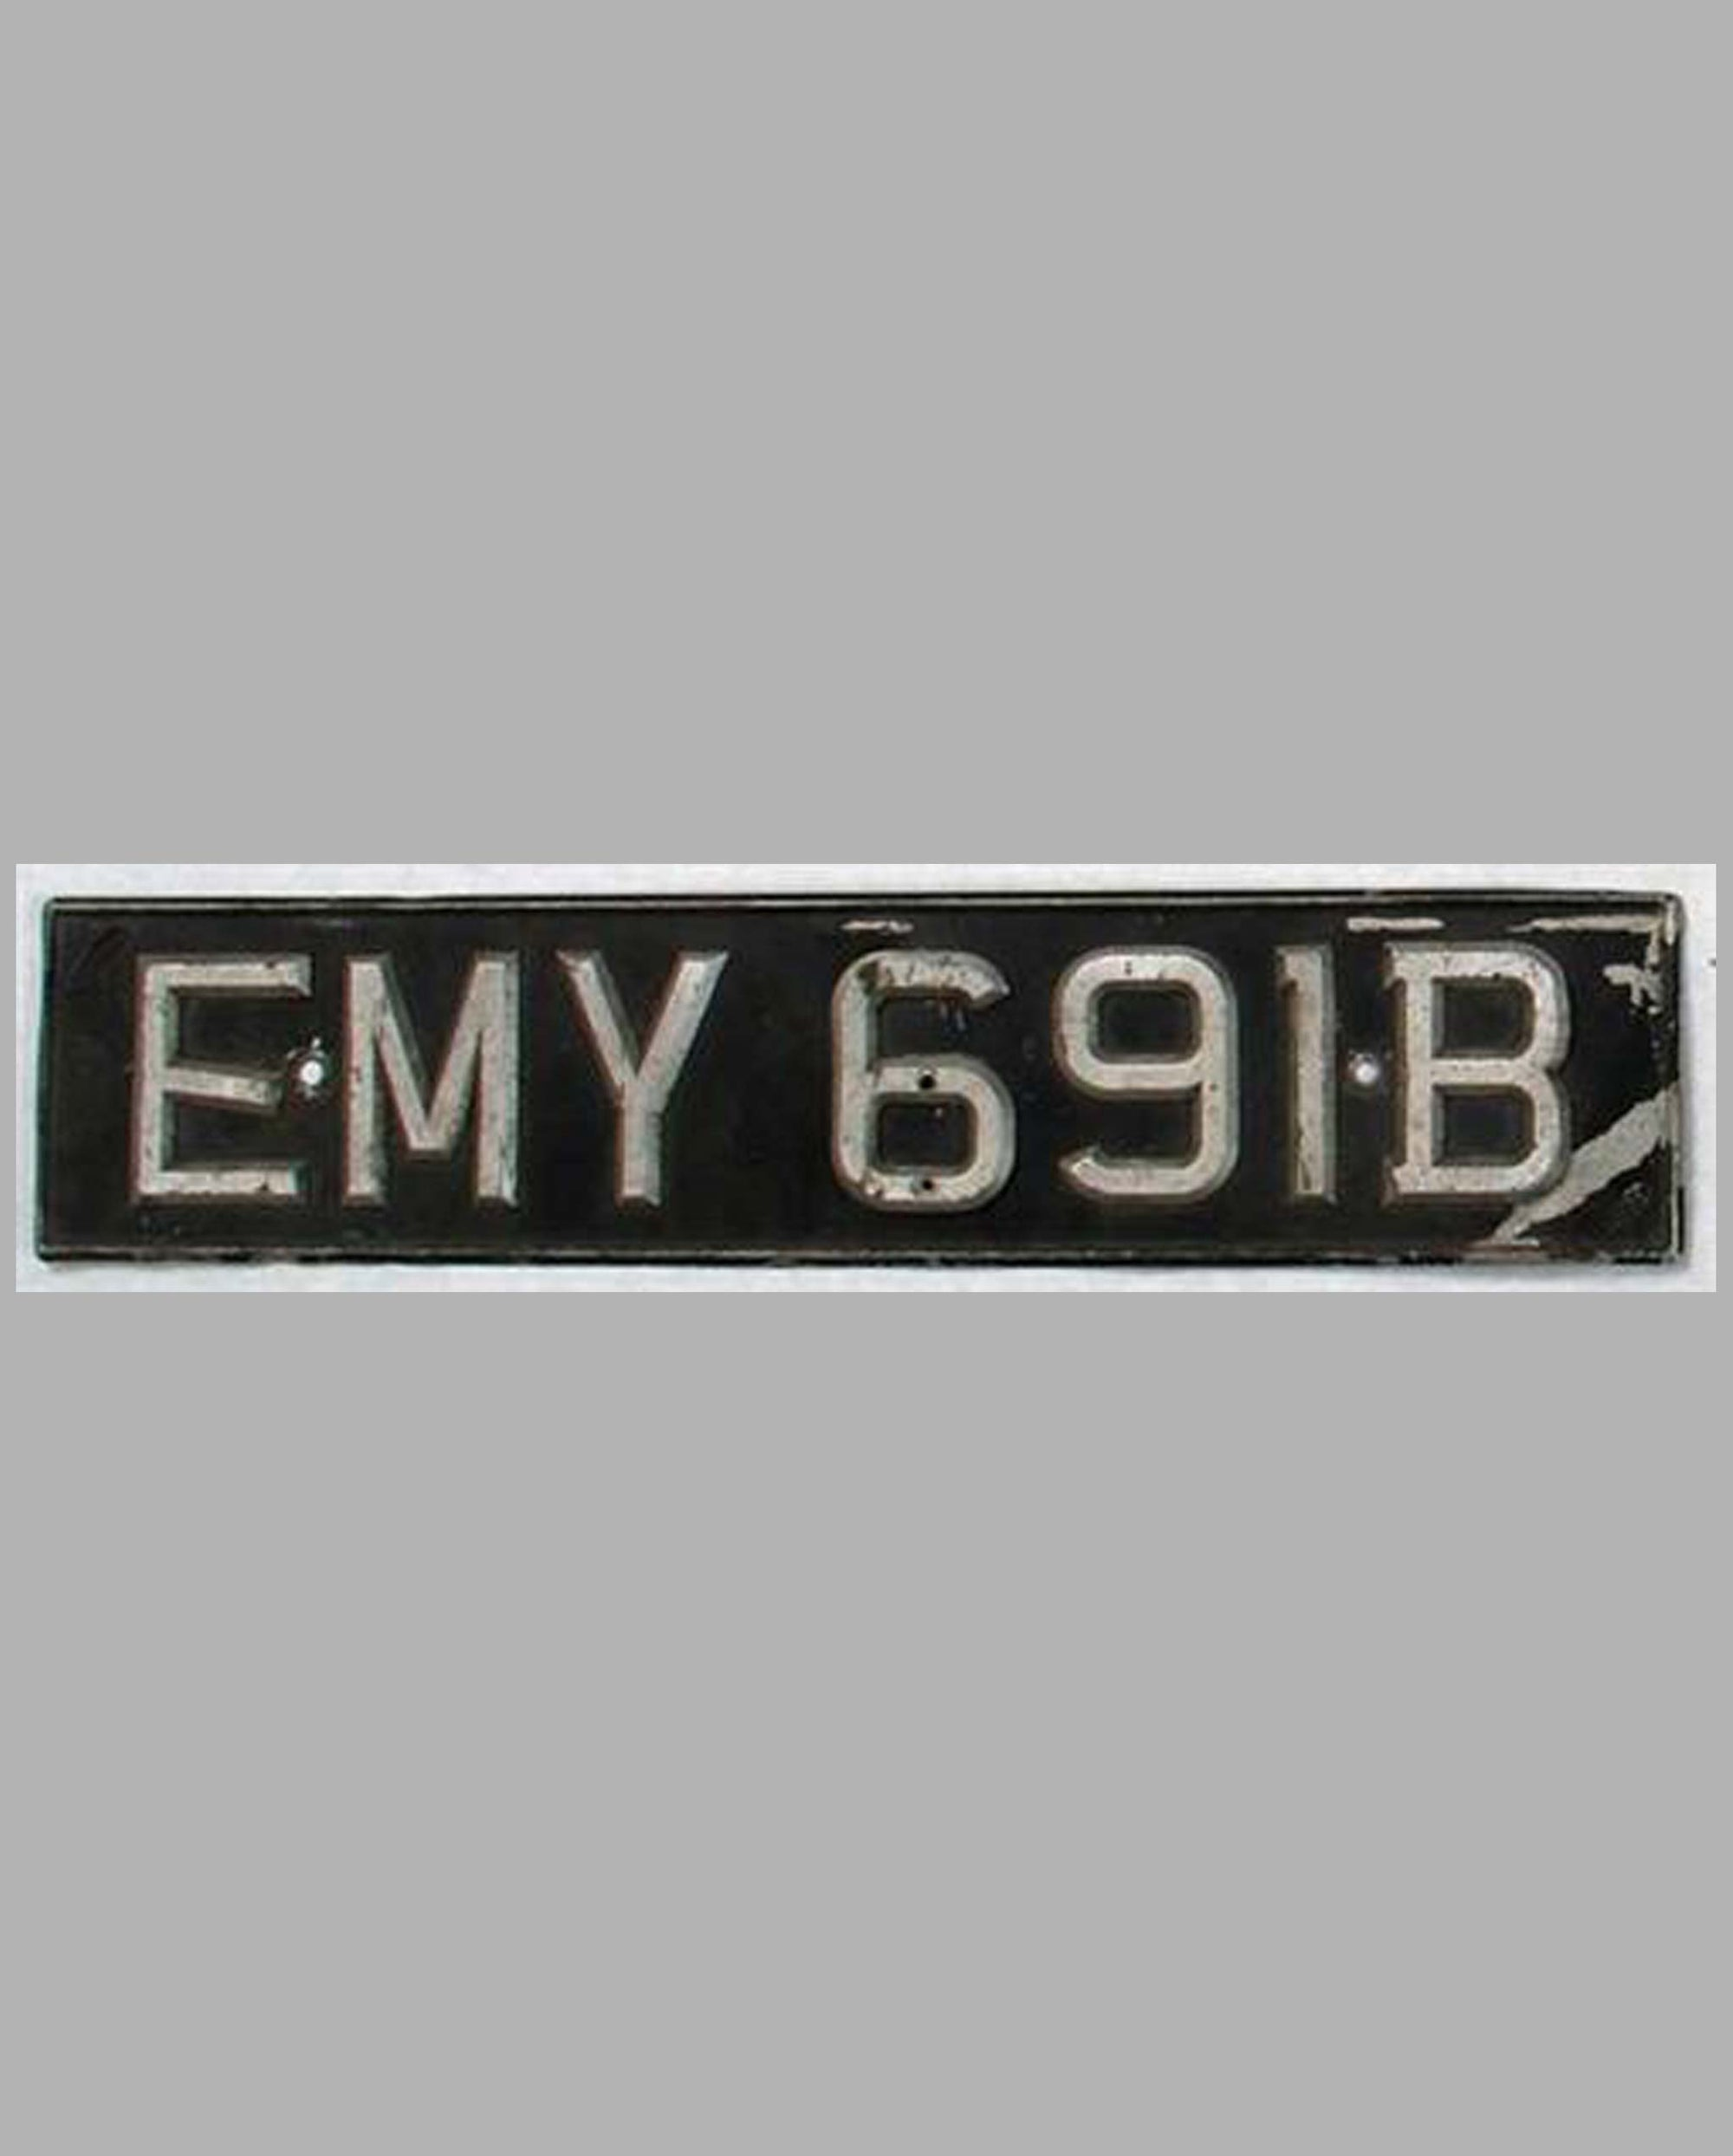 Original 1960's British License Plate EMY691B